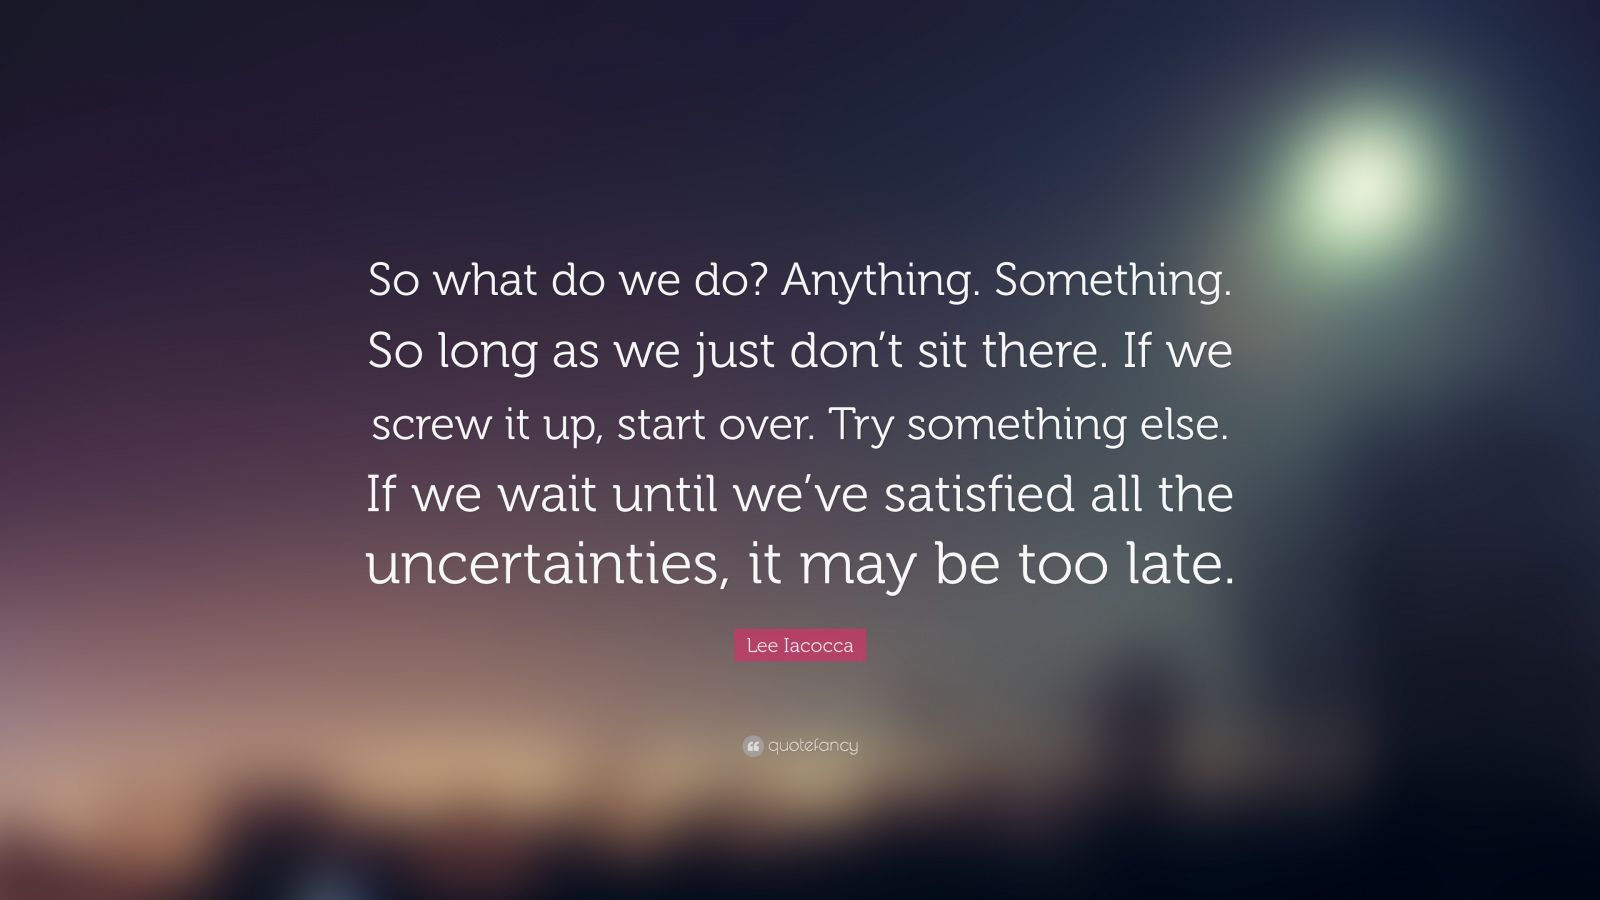 "Lee Iacocca Quote: ""So what do we do? Anything. Something. So long as we just don't sit there. If we screw it up, start over. Try something else. If we wait until we've satisfied all the uncertainties, it may be too late."""